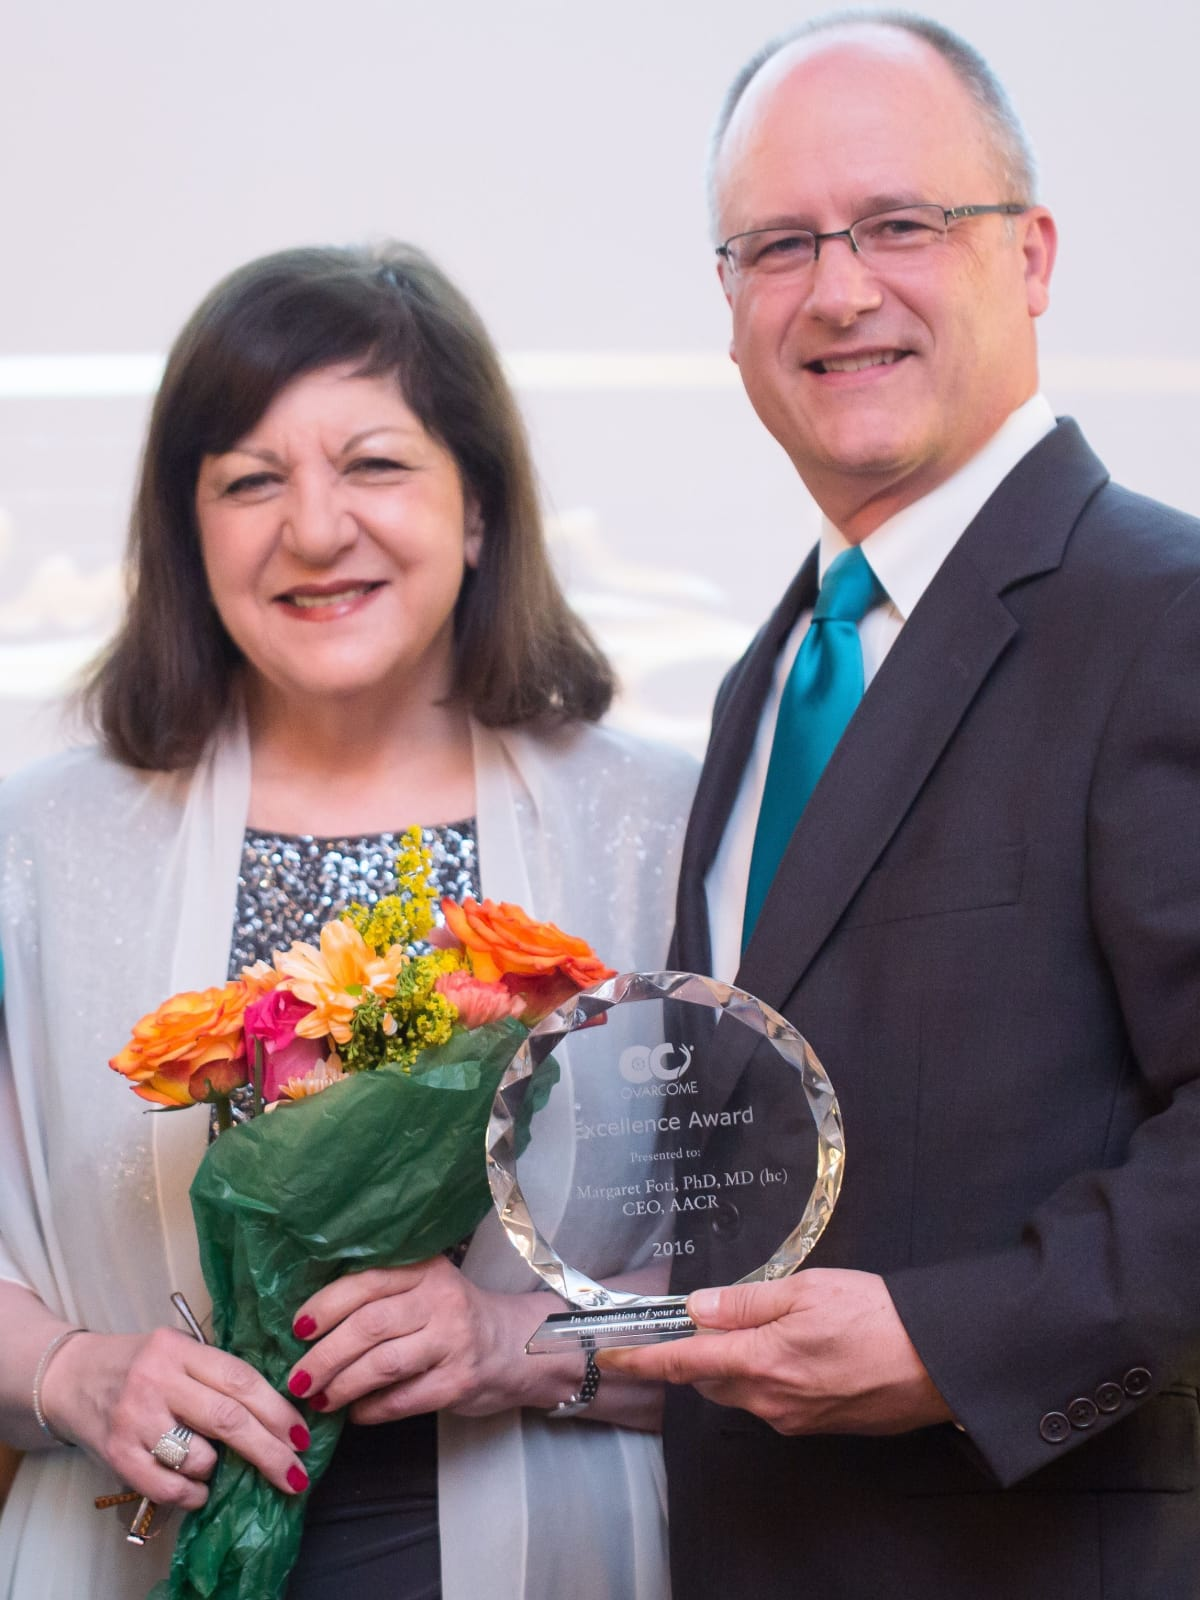 Ovarcome gala, Dr. Margaret Foti and Rob Heifner